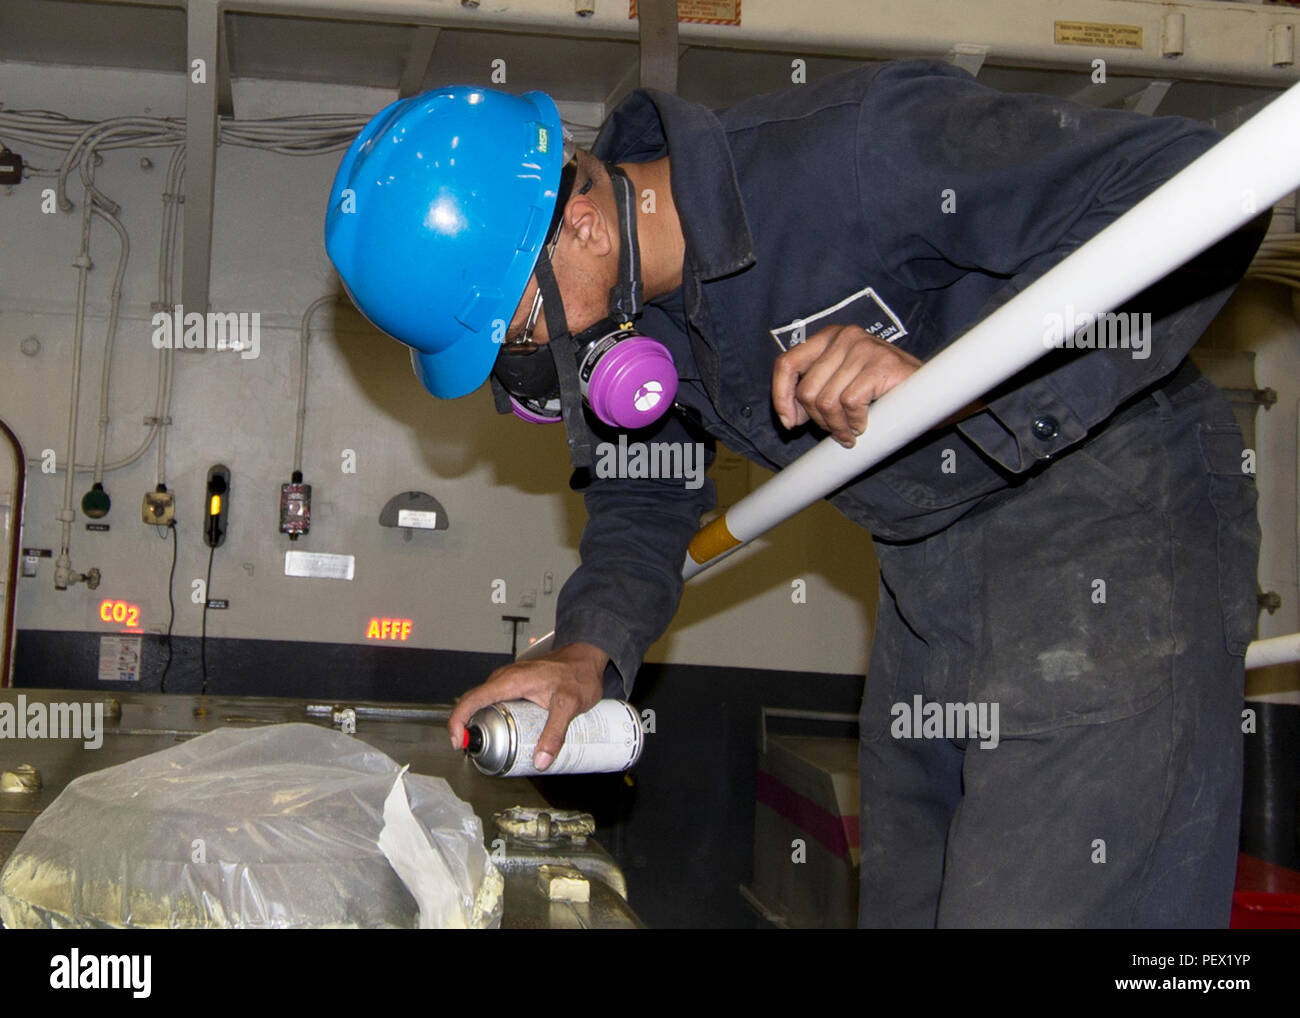 160213-N-GV721-022 PACIFIC OCEAN (Feb. 13, 2016) Aviation Support Equipment Technician Seaman Malik Thomas paints a V-22 portable hydraulic power supply (PHPS) in the hanger bay of USS Boxer (LHD 4). More than 4,500 Sailors and Marines from Boxer Amphibious Ready Group and embarked 13th Marine Expeditionary Unit (13th MEU) are transiting the Pacific Ocean en route to the U.S. 5th and 7th Fleet areas of operations. (U.S. Navy photo by Mass Communication Specialist 2nd Brian Caracci/Released) - Stock Image